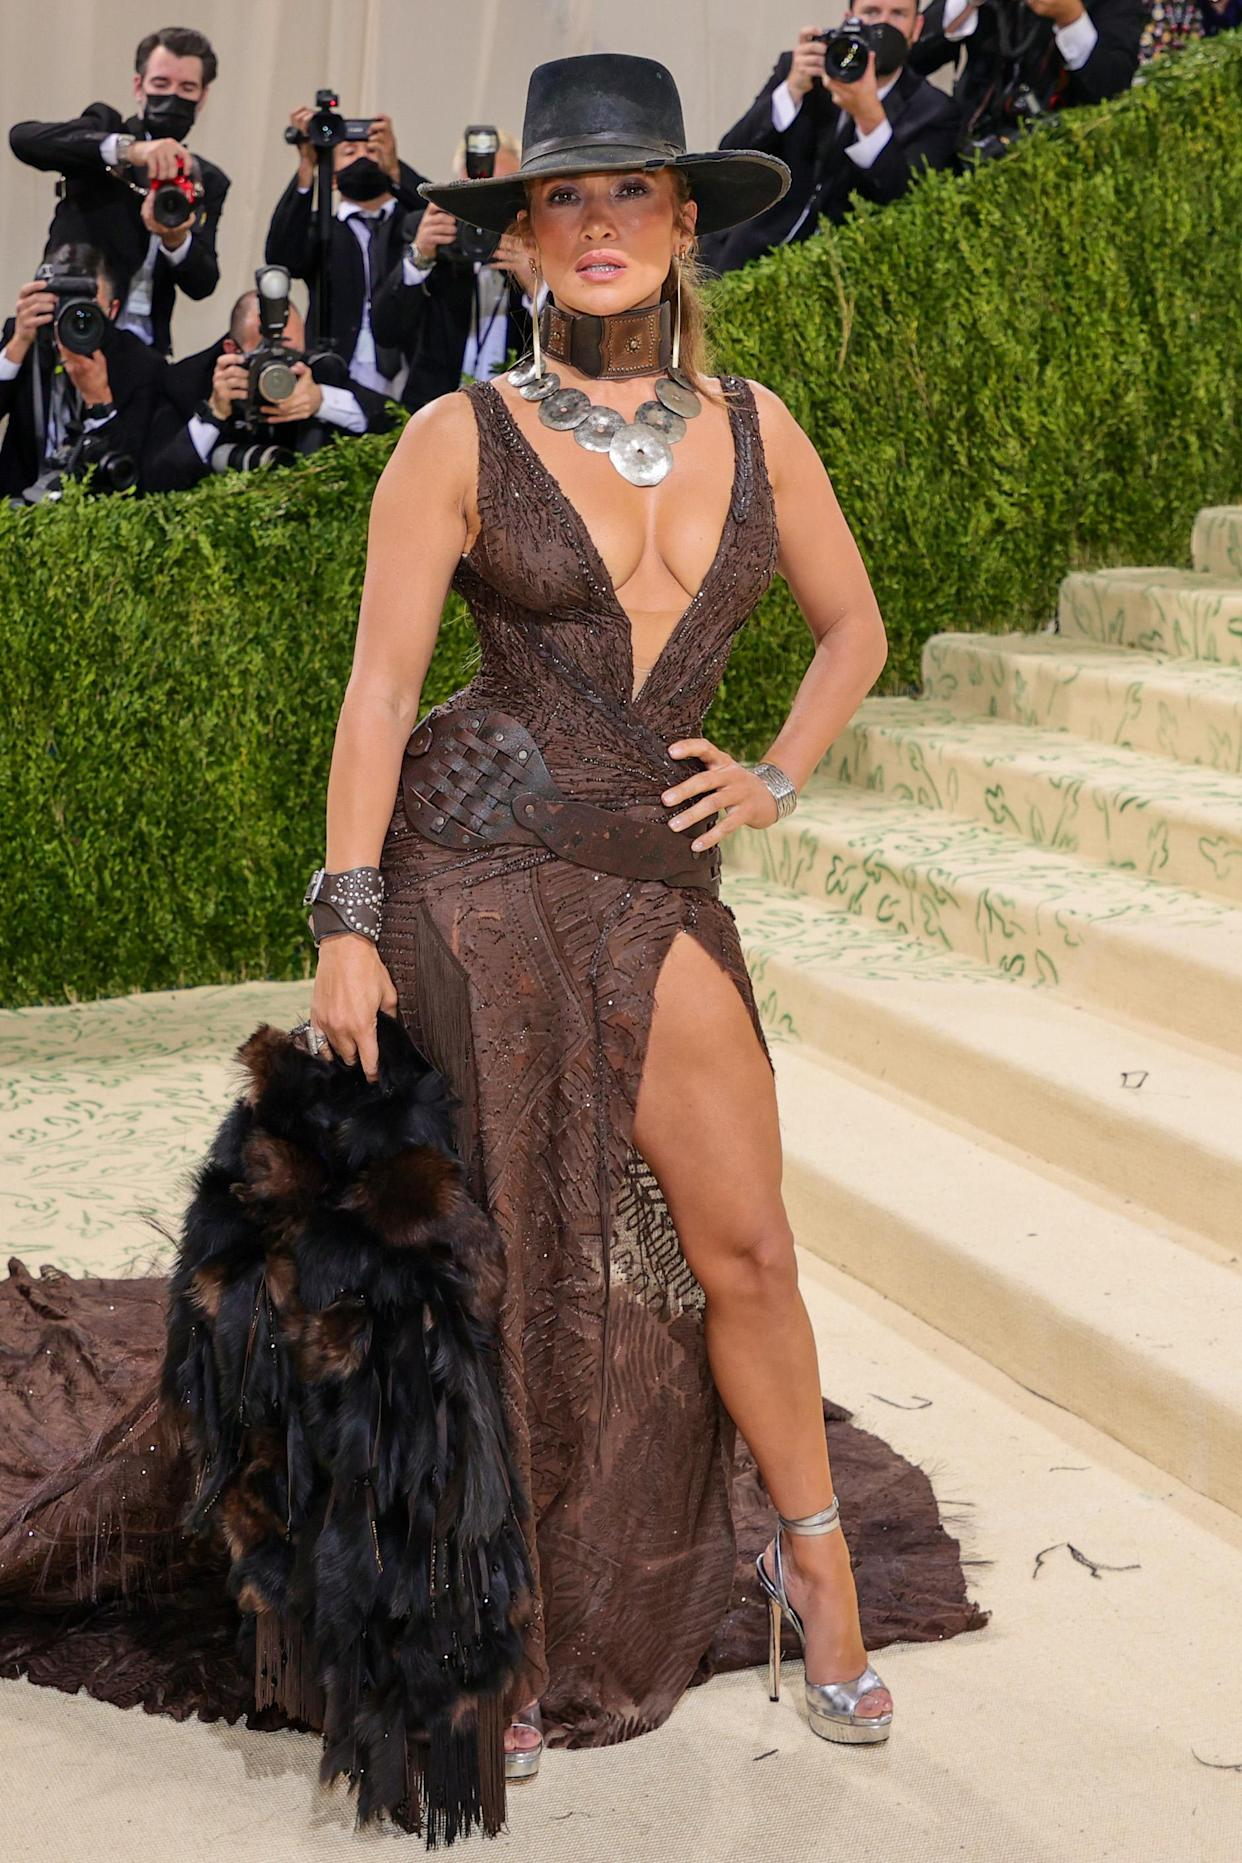 Jennifer Lopez attends The 2021 Met Gala Celebrating In America: A Lexicon Of Fashion at Metropolitan Museum of Art on September 13, 2021 in New York City. (Getty Images)